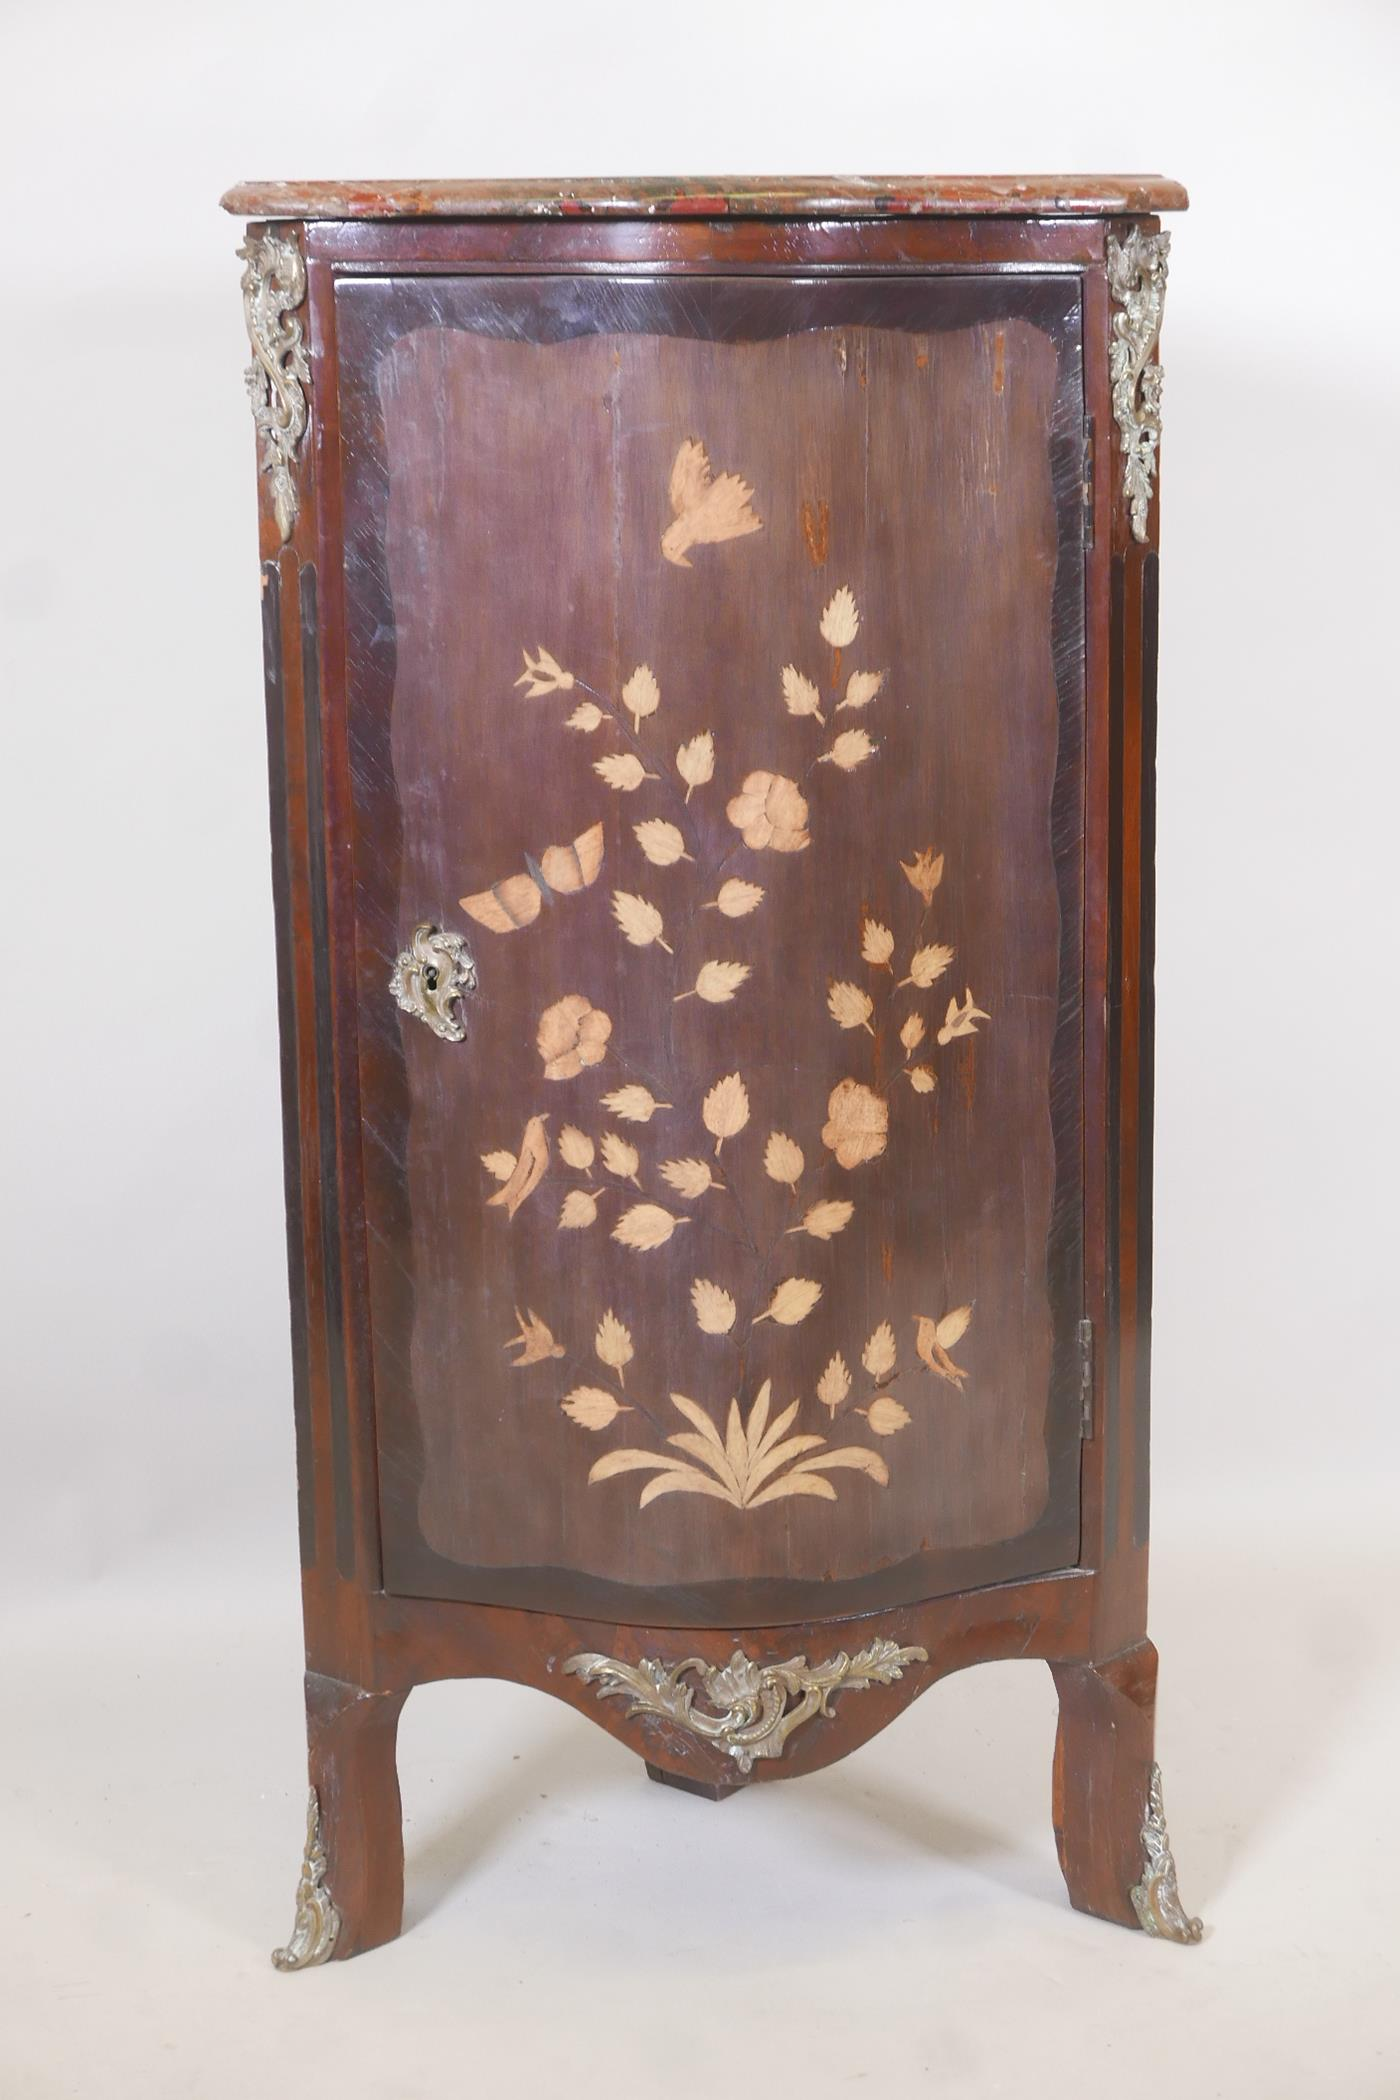 An early C19th French inlaid standing corner cupboard, with rouge marble top and serpentine front